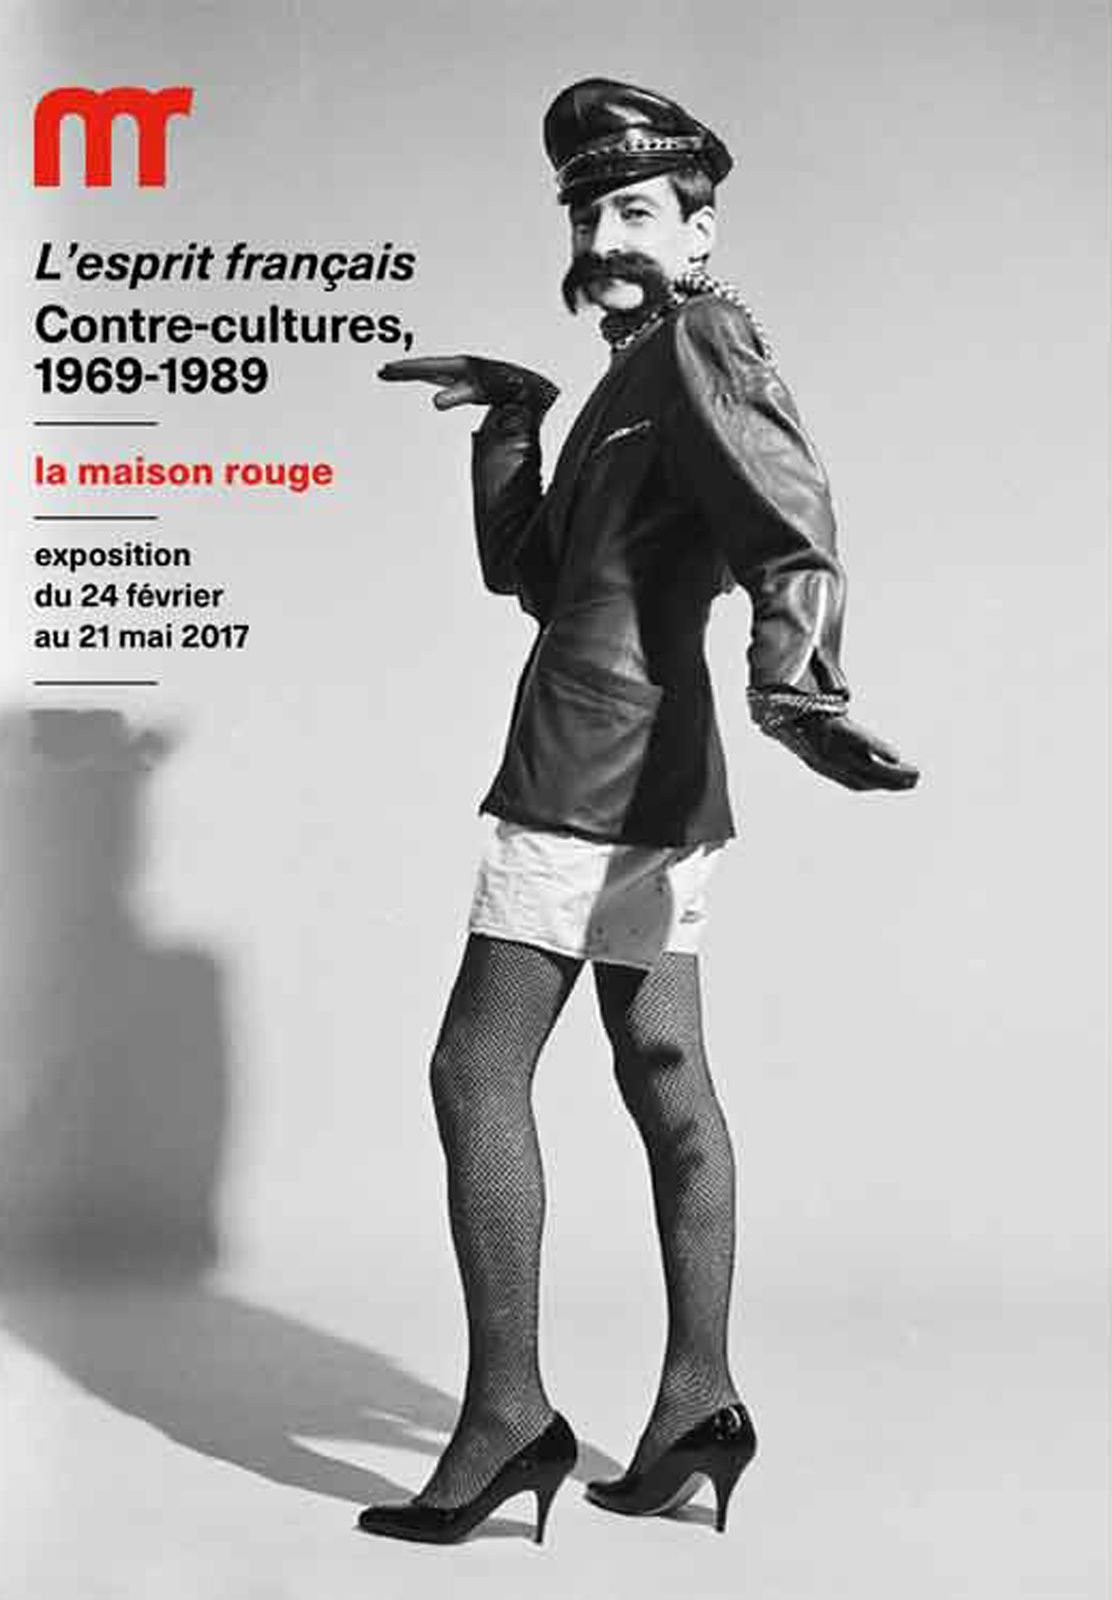 Expo Collective Contemporaine: L'Esprit Français, Contre-Cultures 1969-1989